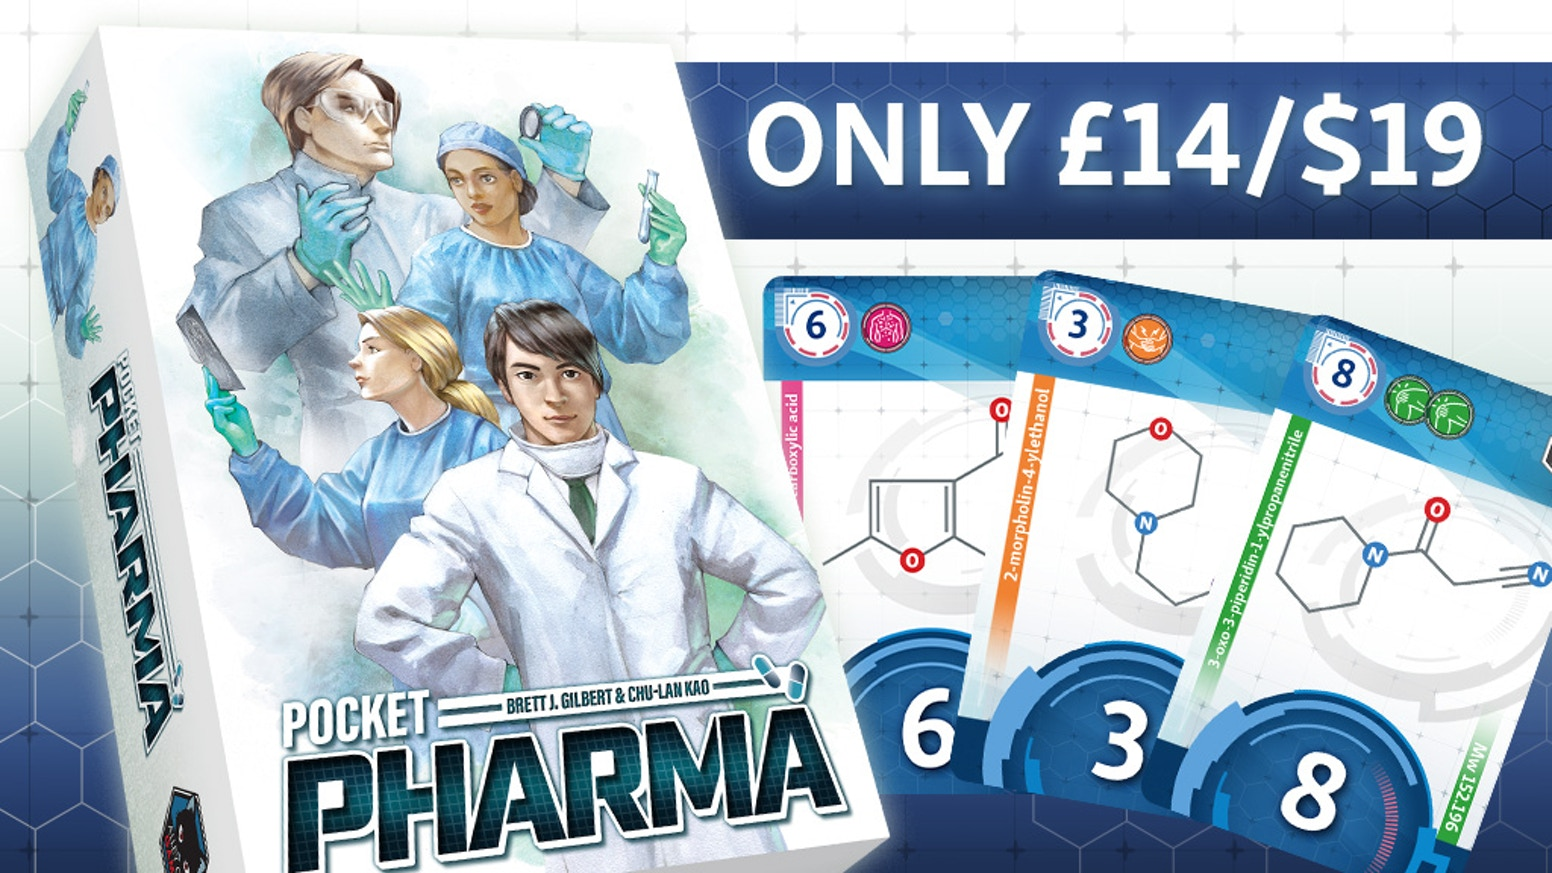 Designed by Kennerspiel des Jahres nominee Brett J. Gilbert, Pocket Pharma is an awesome pharmaceutical game in a pocket-sized box!